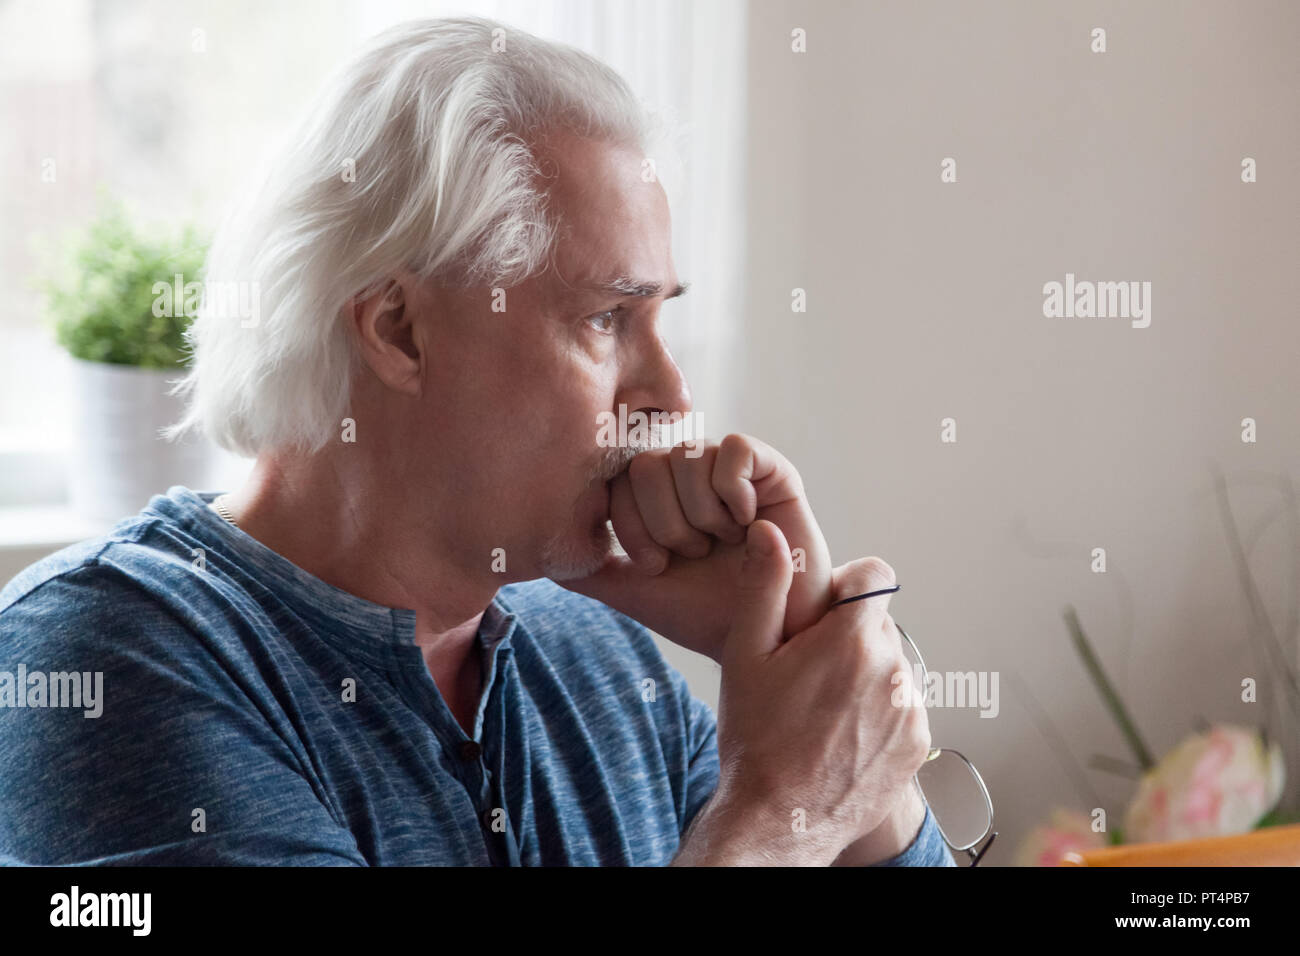 Worried serious senior man looking away feeling anxious about pr - Stock Image